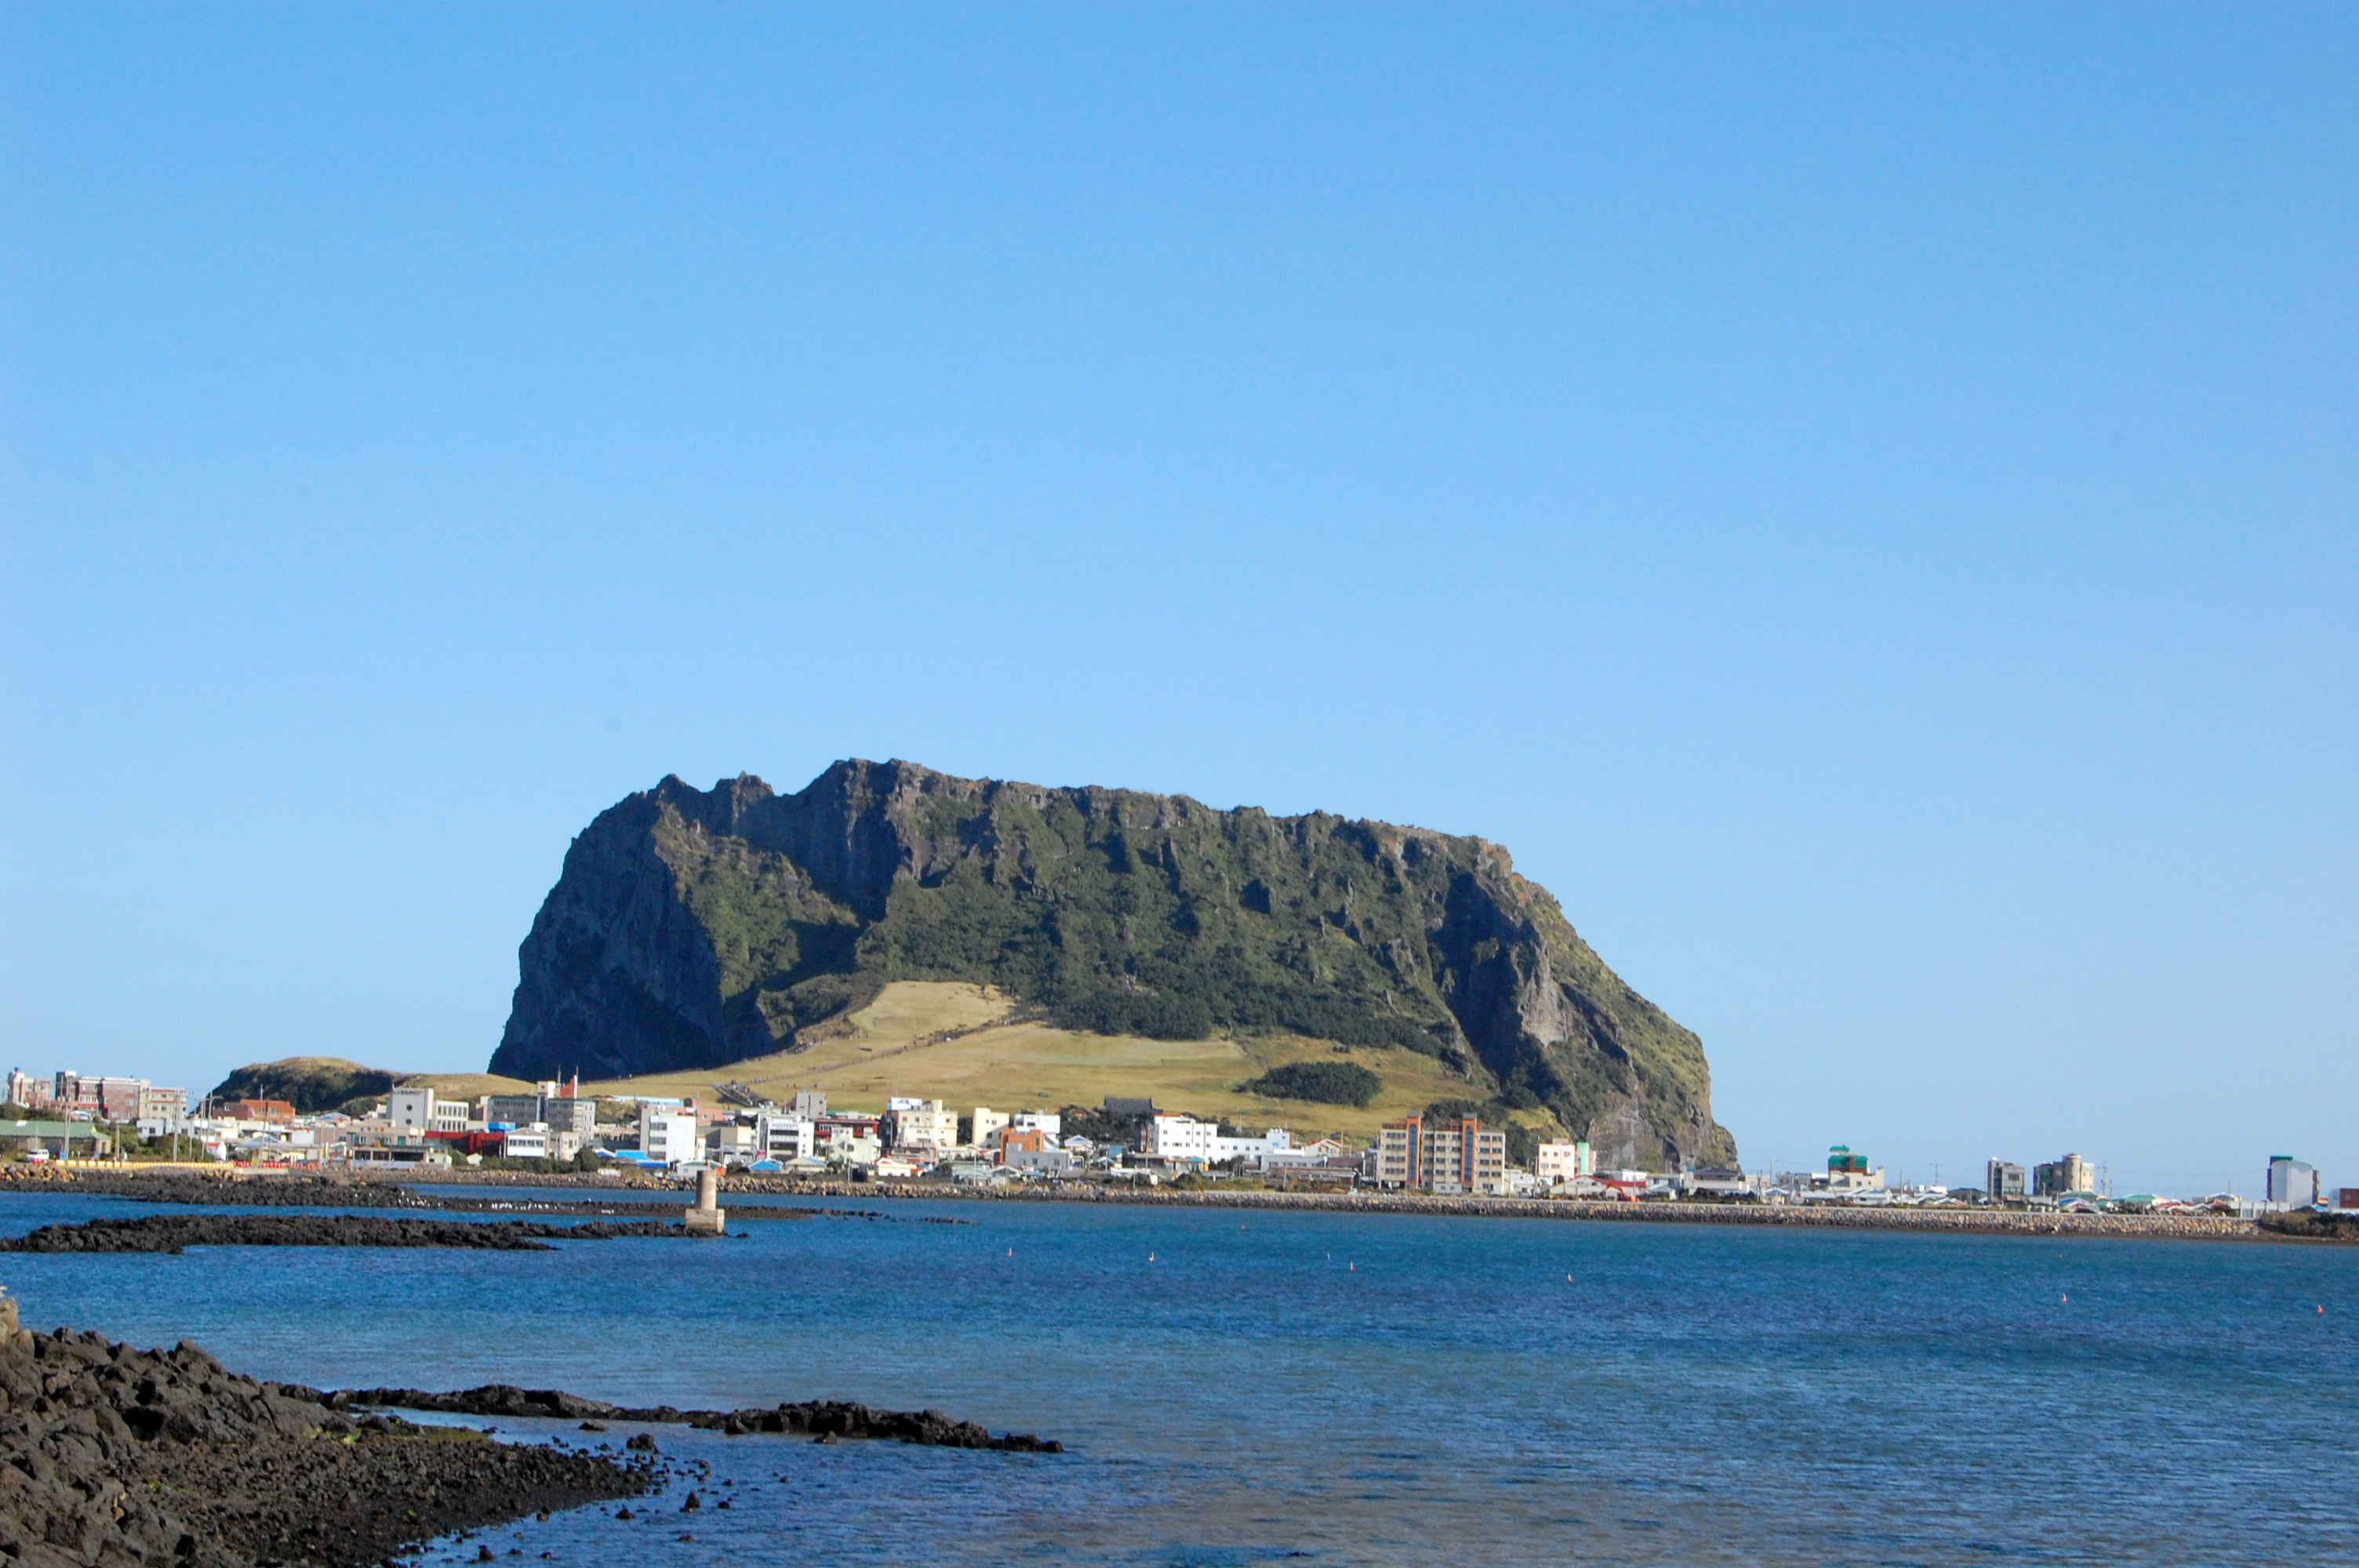 Jeju island has only 600,000 residents – which is roughly 3% of Seoul's population on land that's 3X the size of Seoul's metropolitan area.